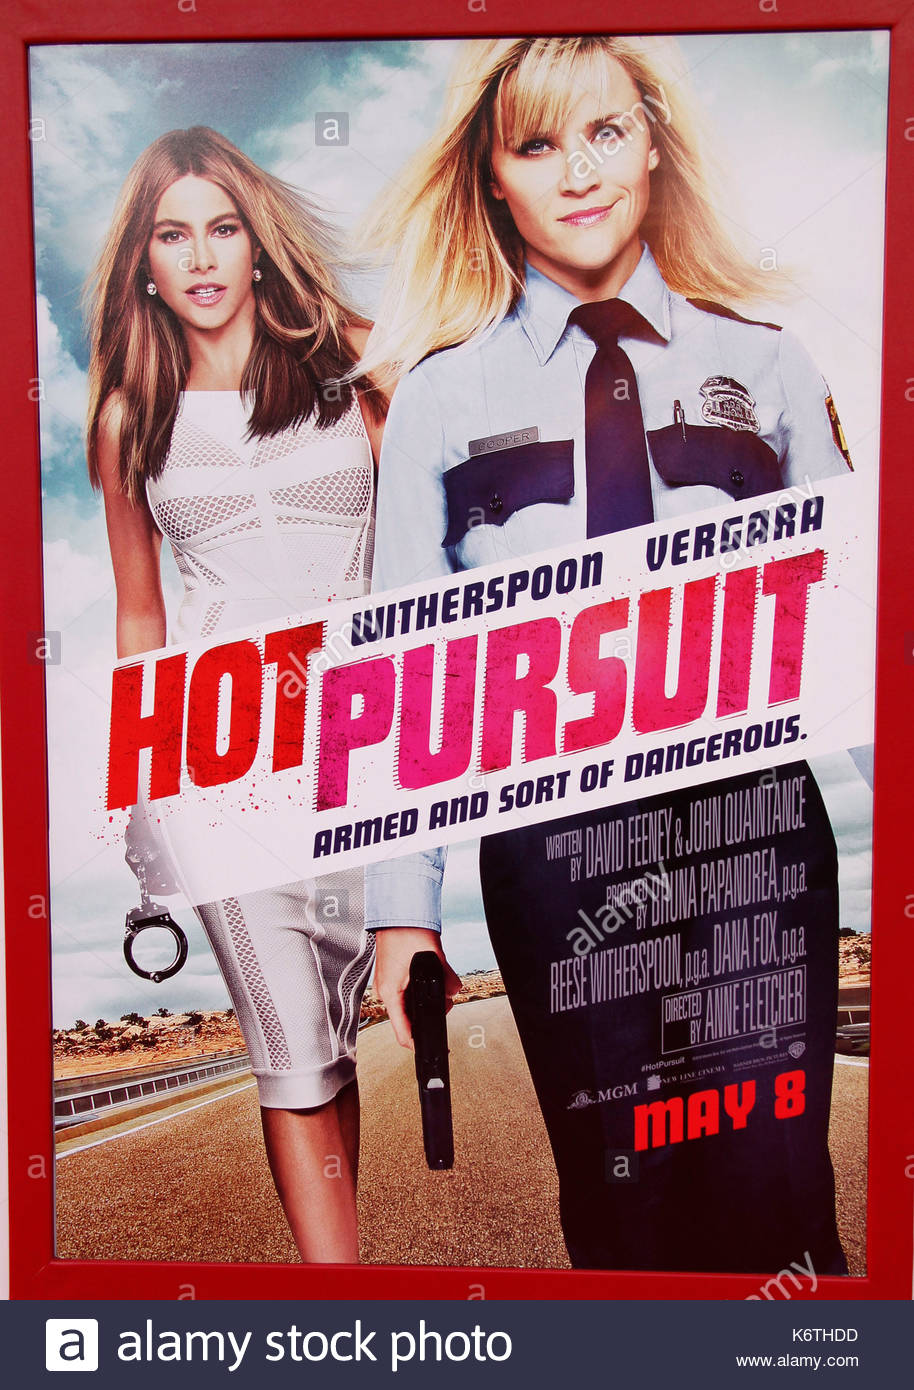 Hot Pursuit Poster The Los Angeles Premiere For Hot Pursuit At The Tcl Chinese Theatre In Hollywood California